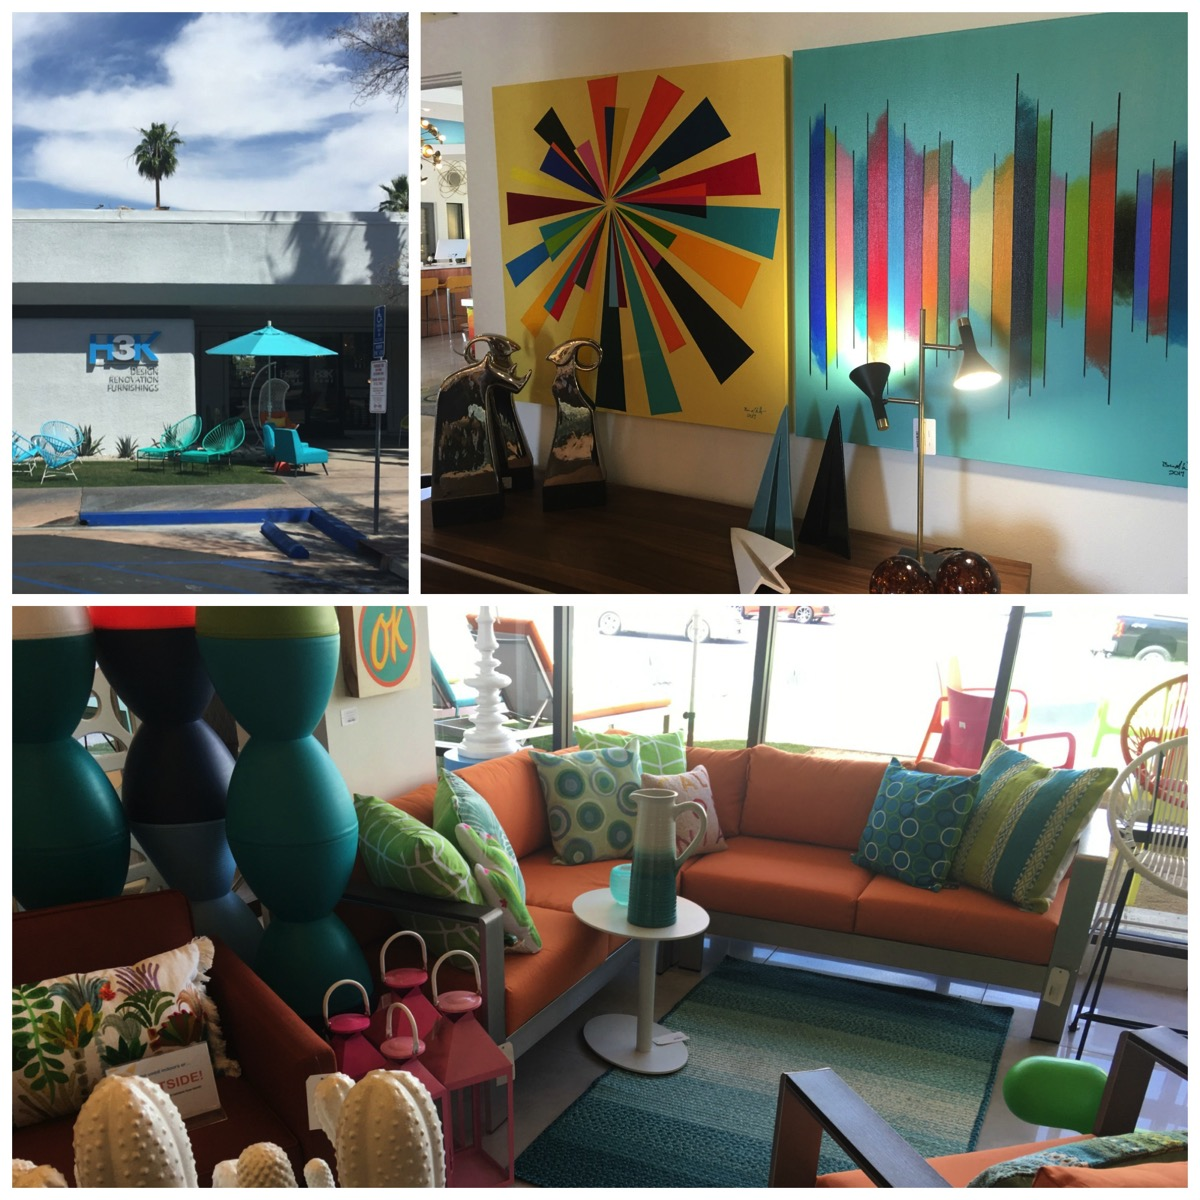 H3K Home Design store in Palm Springs